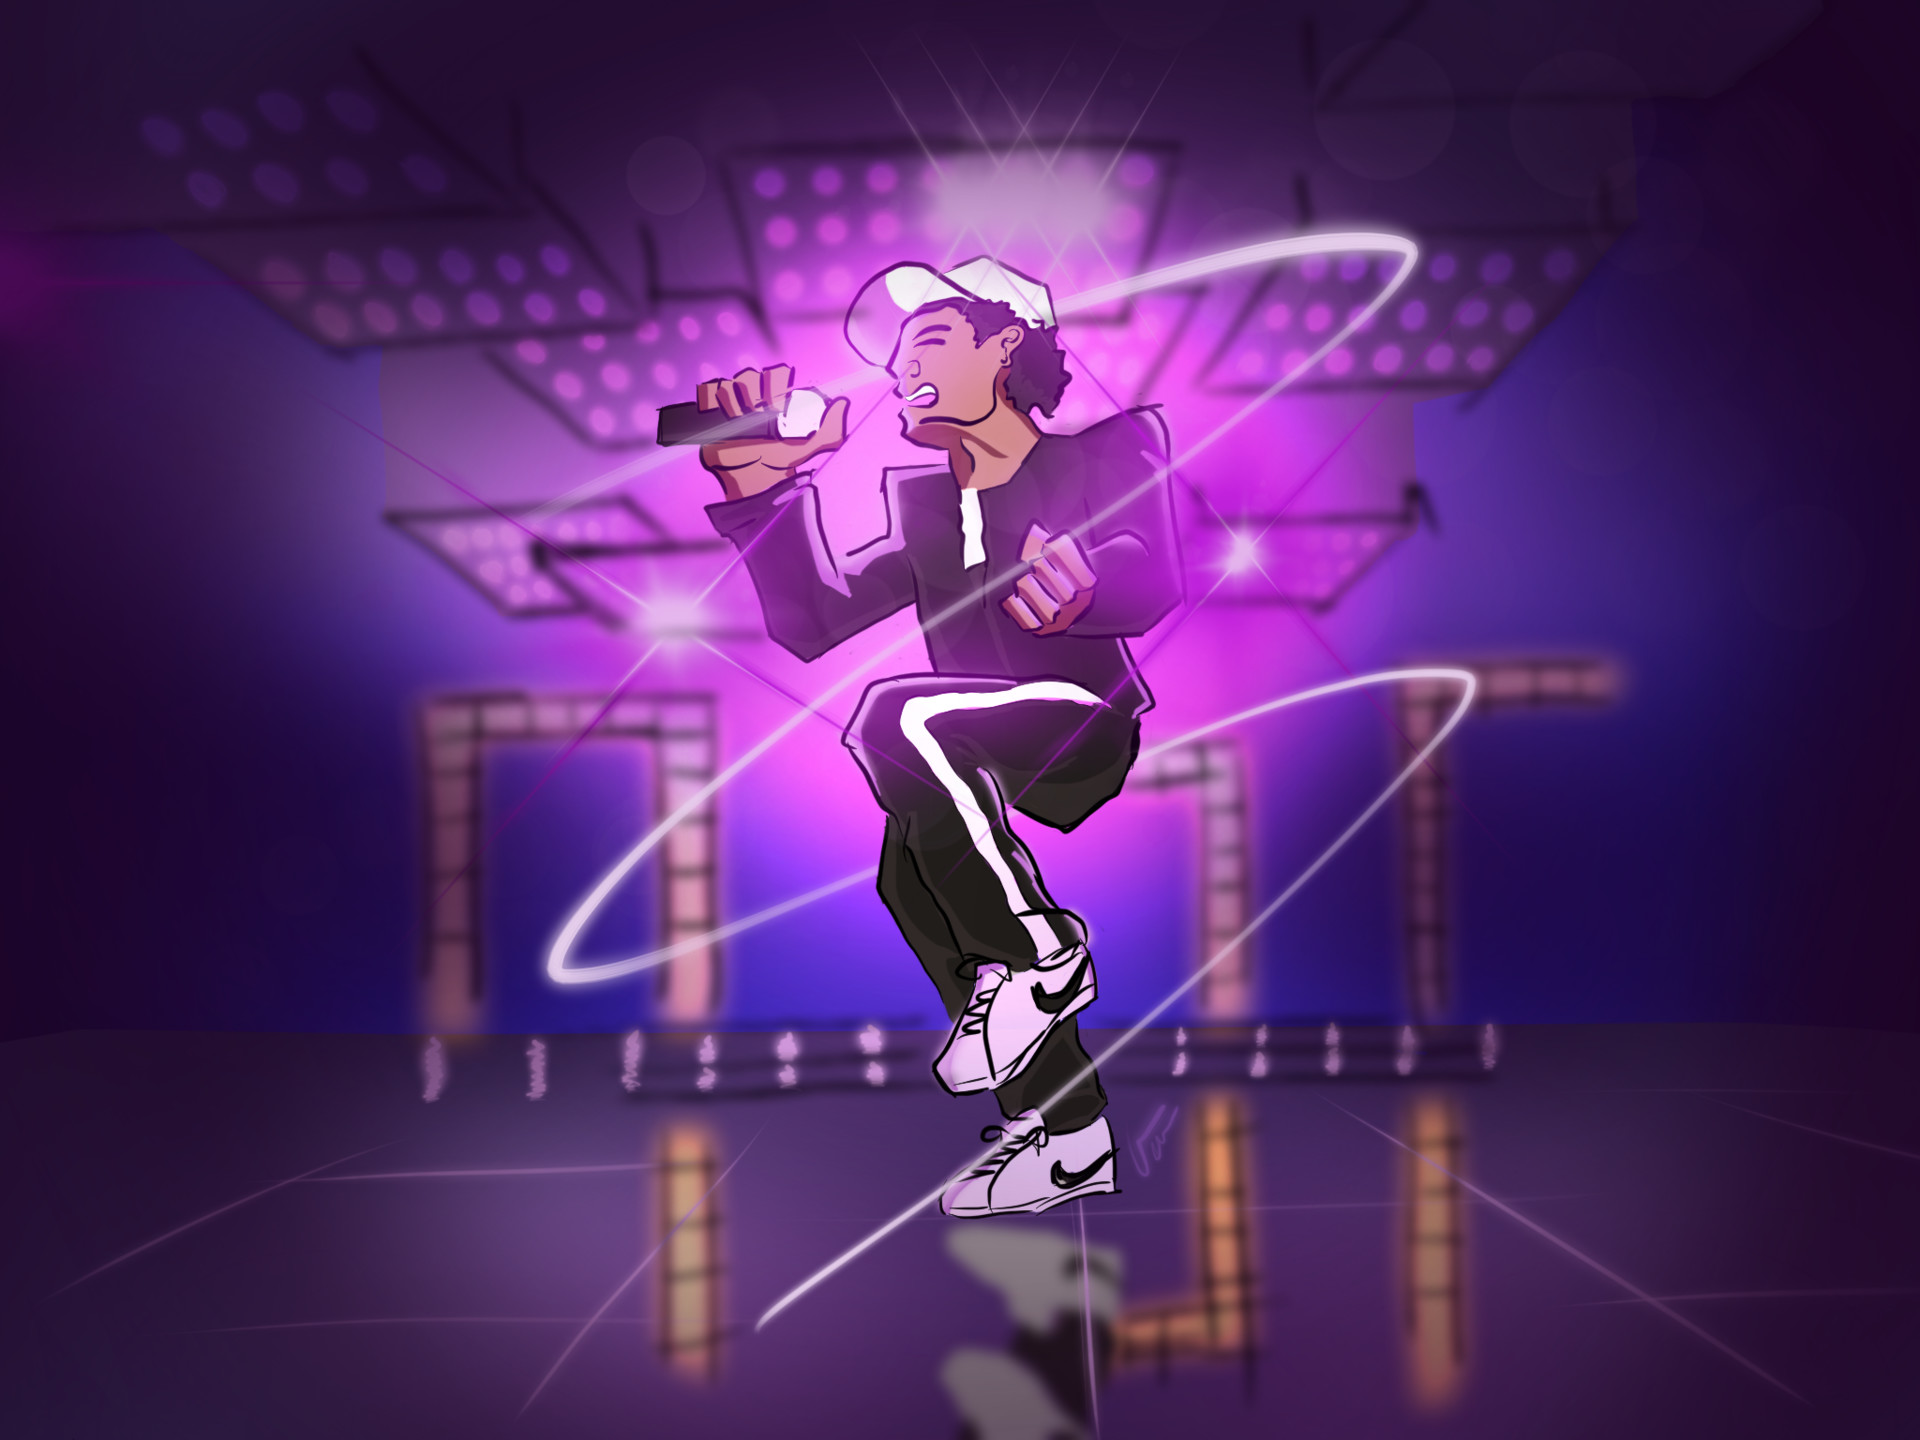 ArtStation - Bruno Mars Cartoon